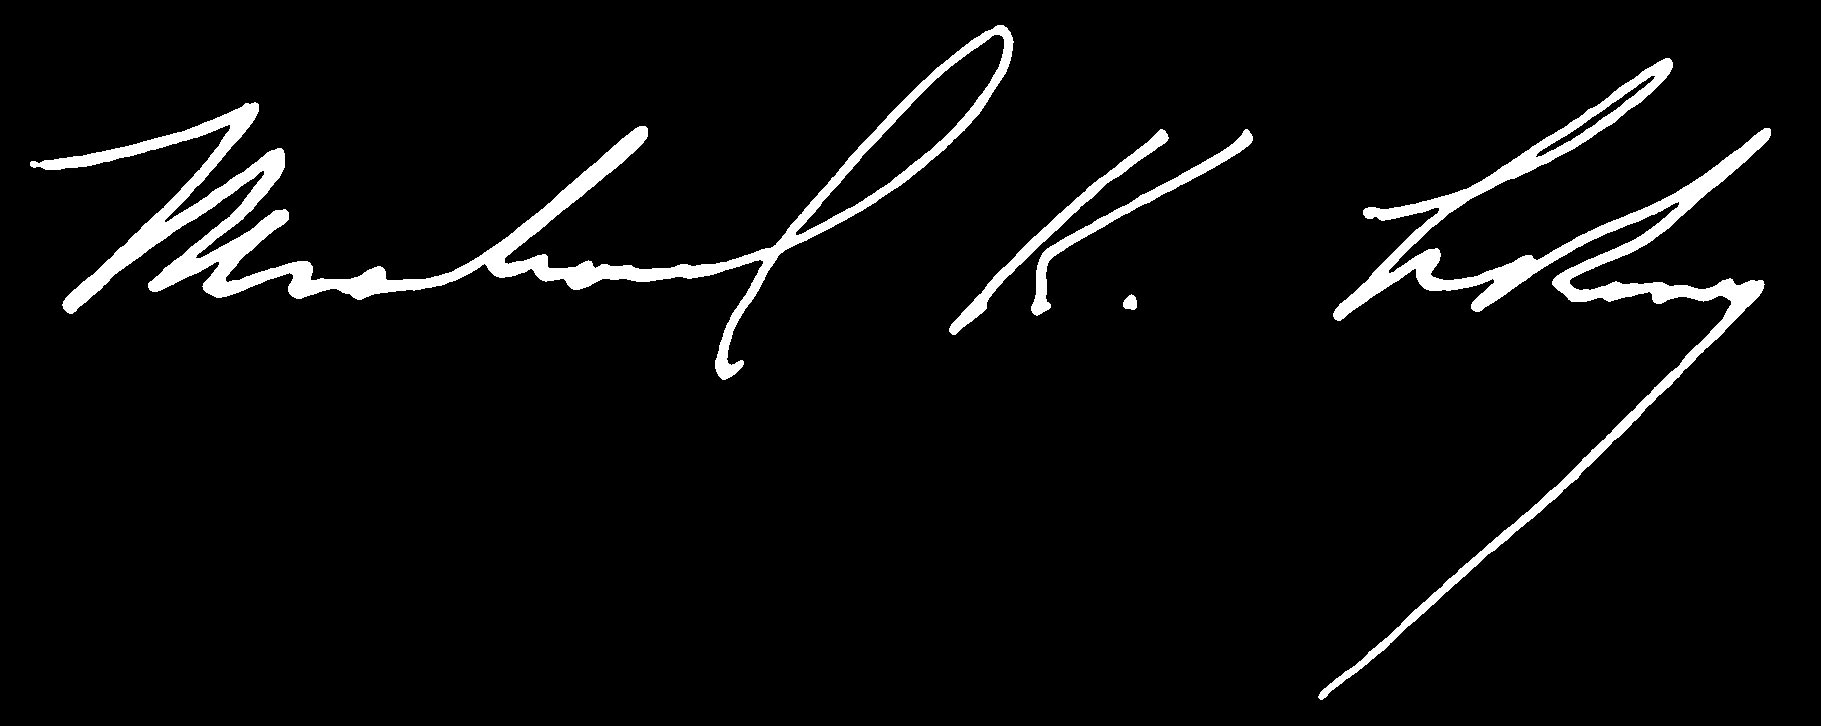 President Le Roy's signature